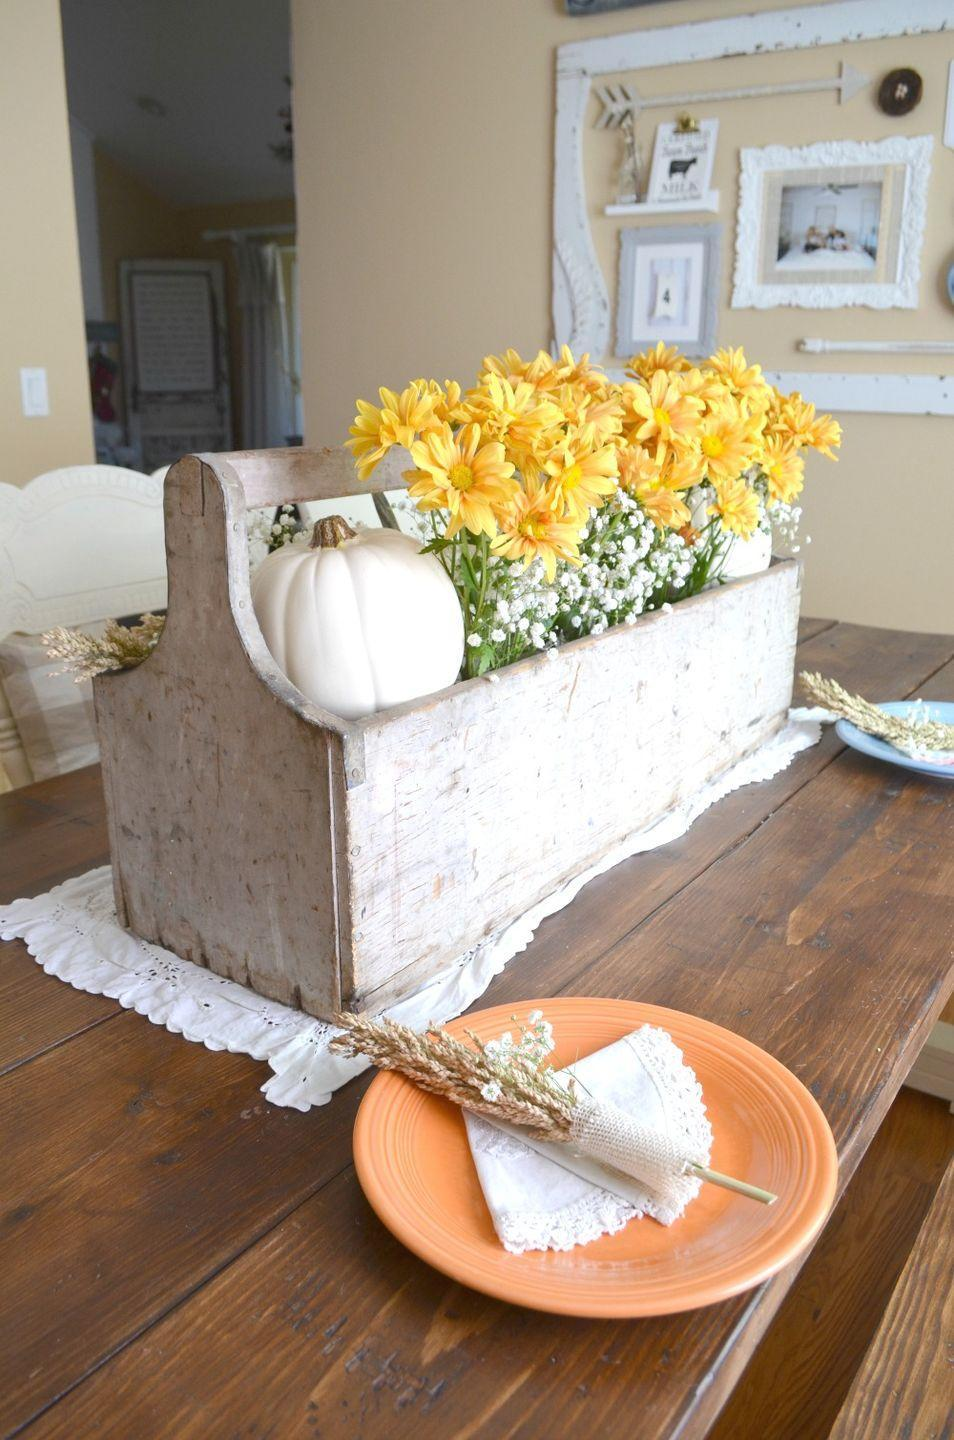 "<p>Pack a whitewashed wooden box with fresh flowers for the holiday festivities. Once the party ends, replace 'em with artificial blooms and keep it out year-round. </p><p><em><a href=""http://littlevintagenest.com/vintage-thanksgiving-table/"" rel=""nofollow noopener"" target=""_blank"" data-ylk=""slk:See more at Little Vintage Nest »"" class=""link rapid-noclick-resp"">See more at Little Vintage Nest »</a></em></p>"